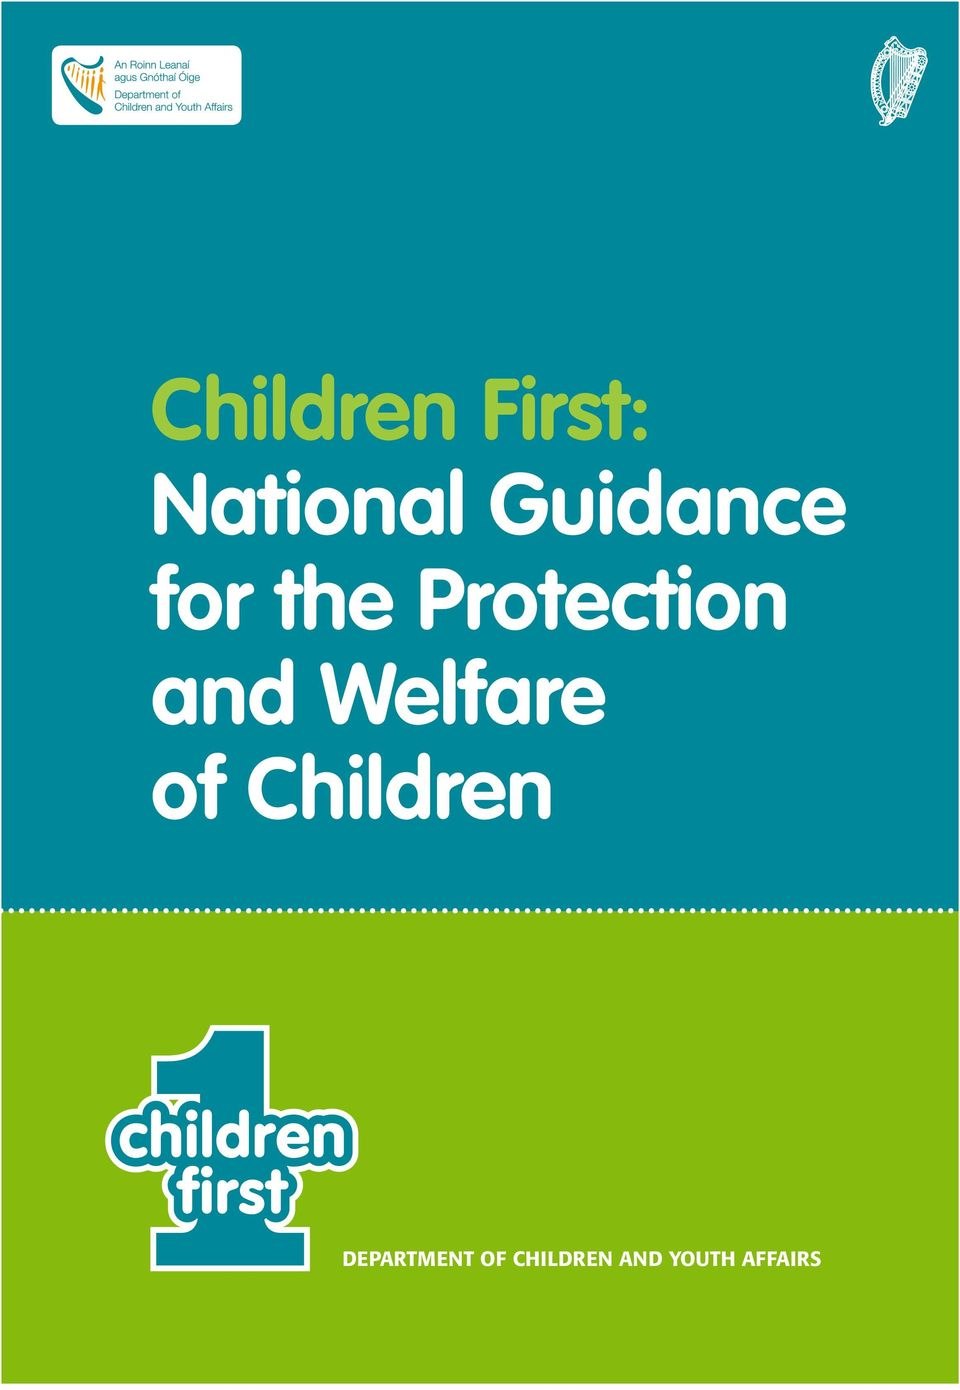 and Welfare of Children